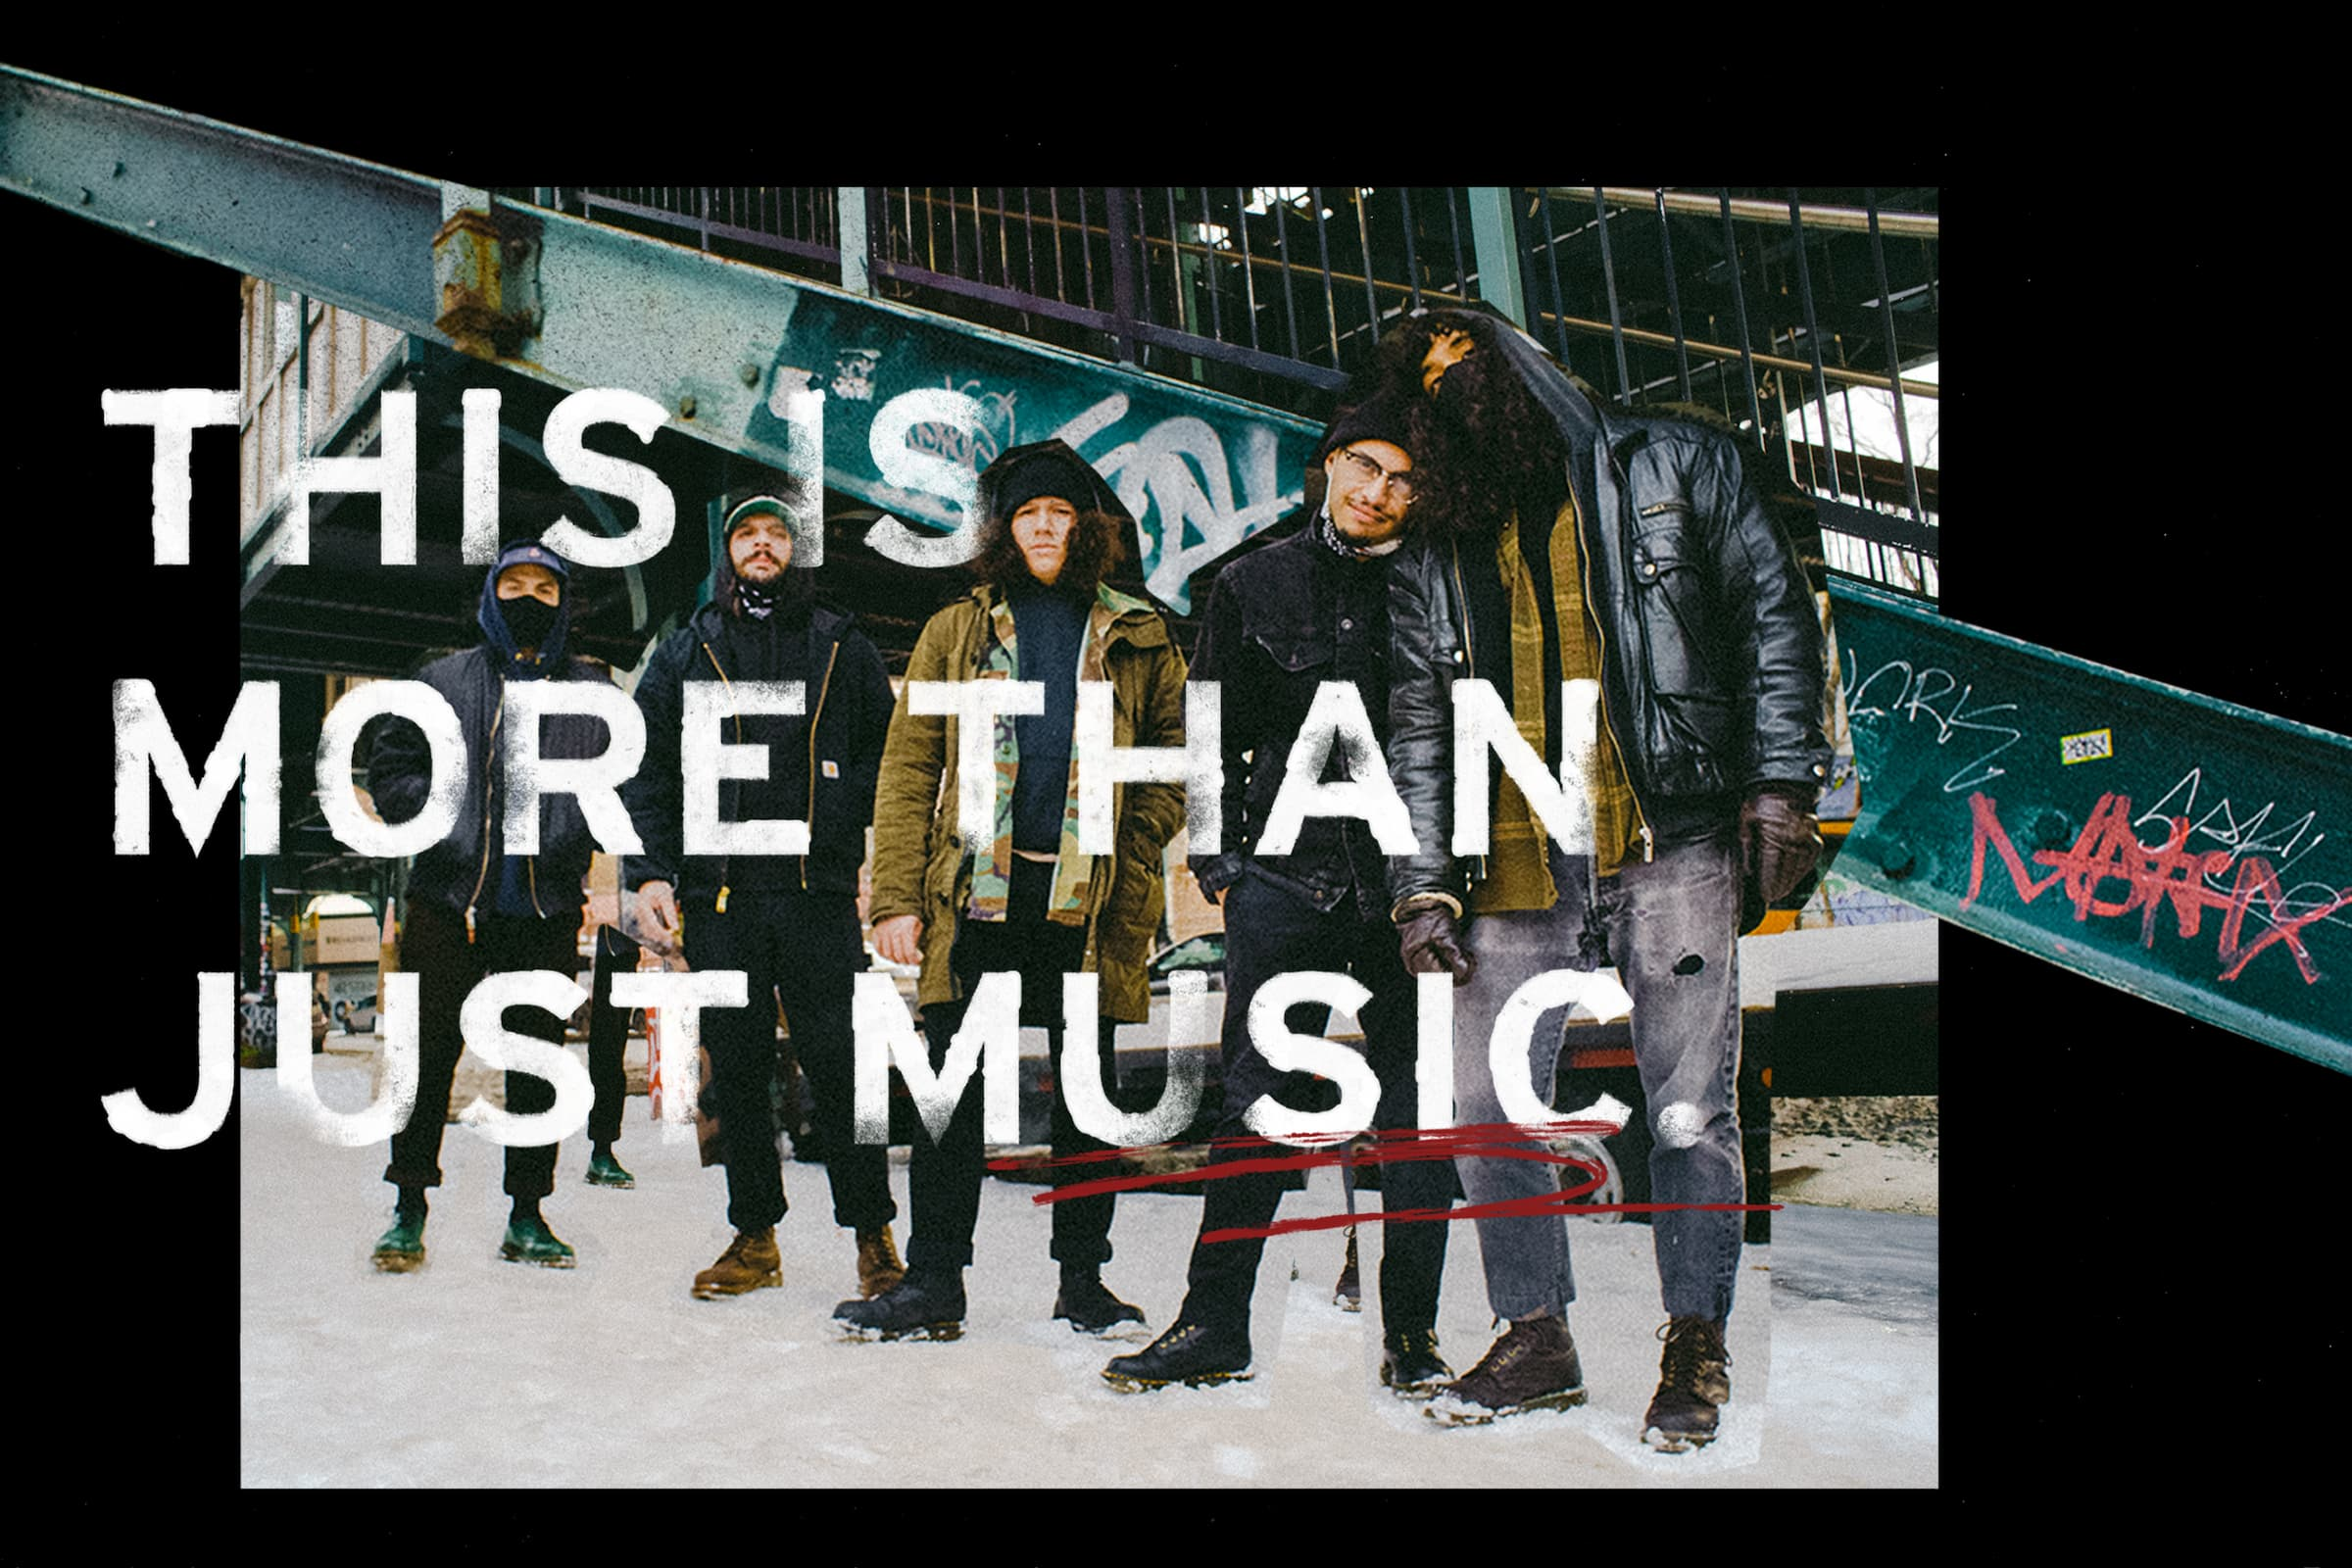 """The band Stuyedeyed posing in front of a tagged stairwell outside with text """"This is more than just music."""""""